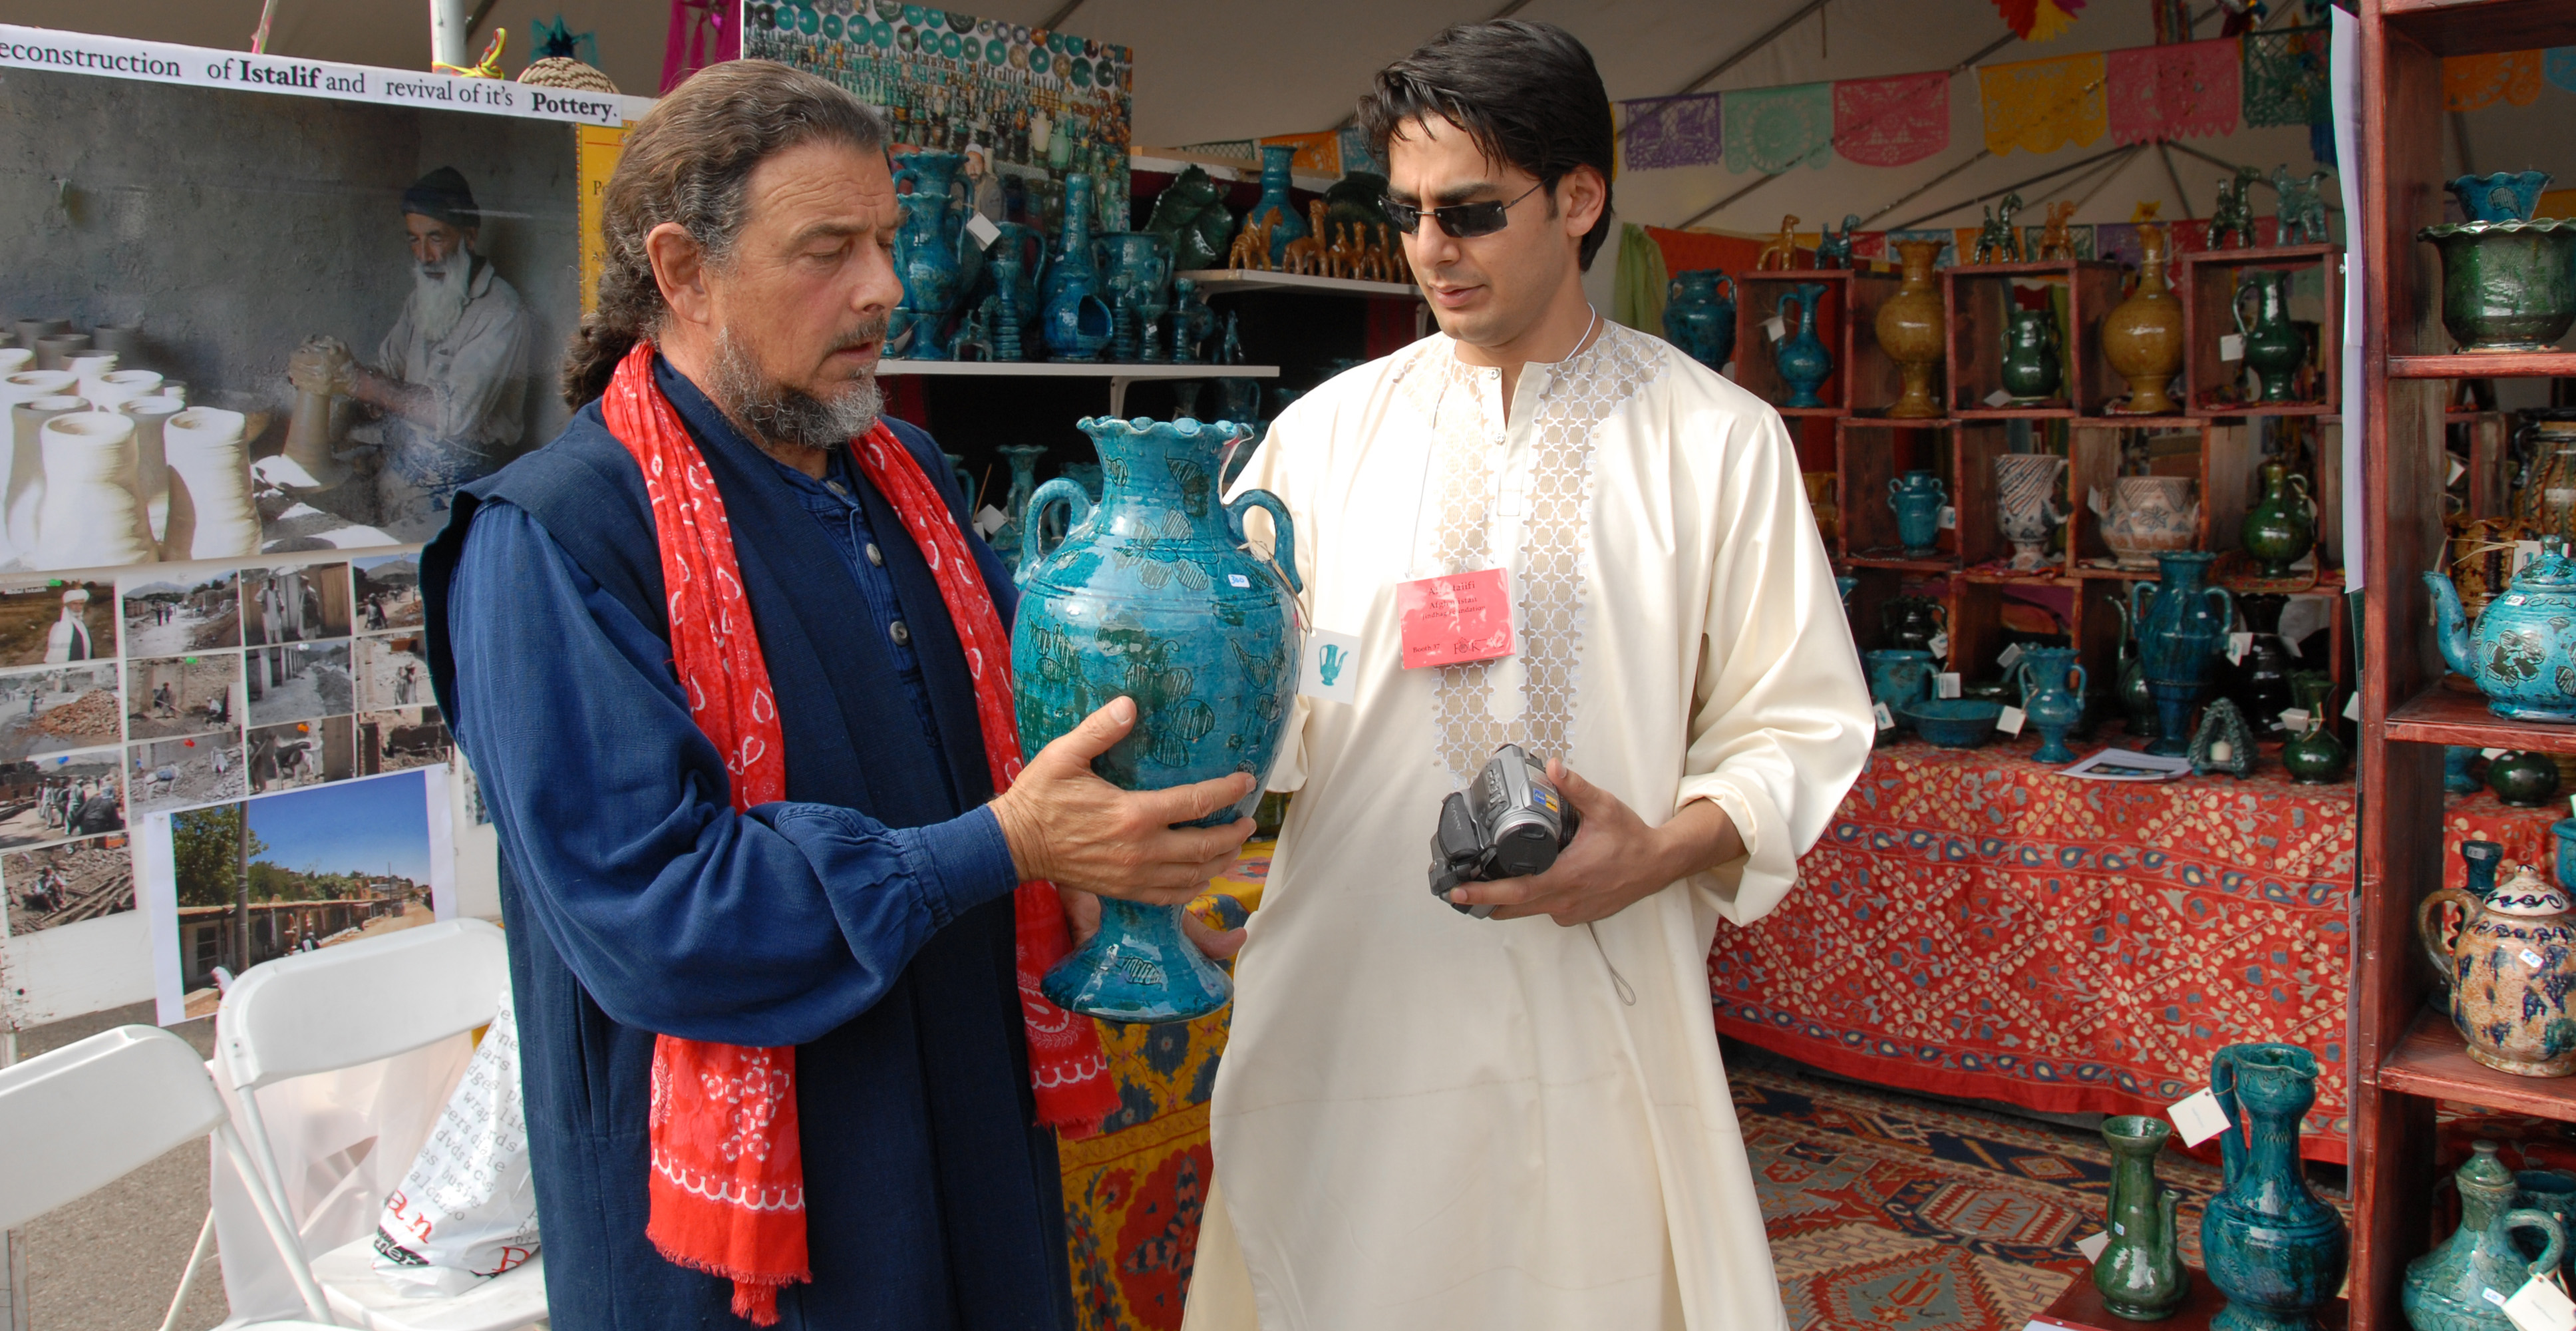 Ali Istalifi selling pottery at the International Folk Art Market in Santa Fe, NM